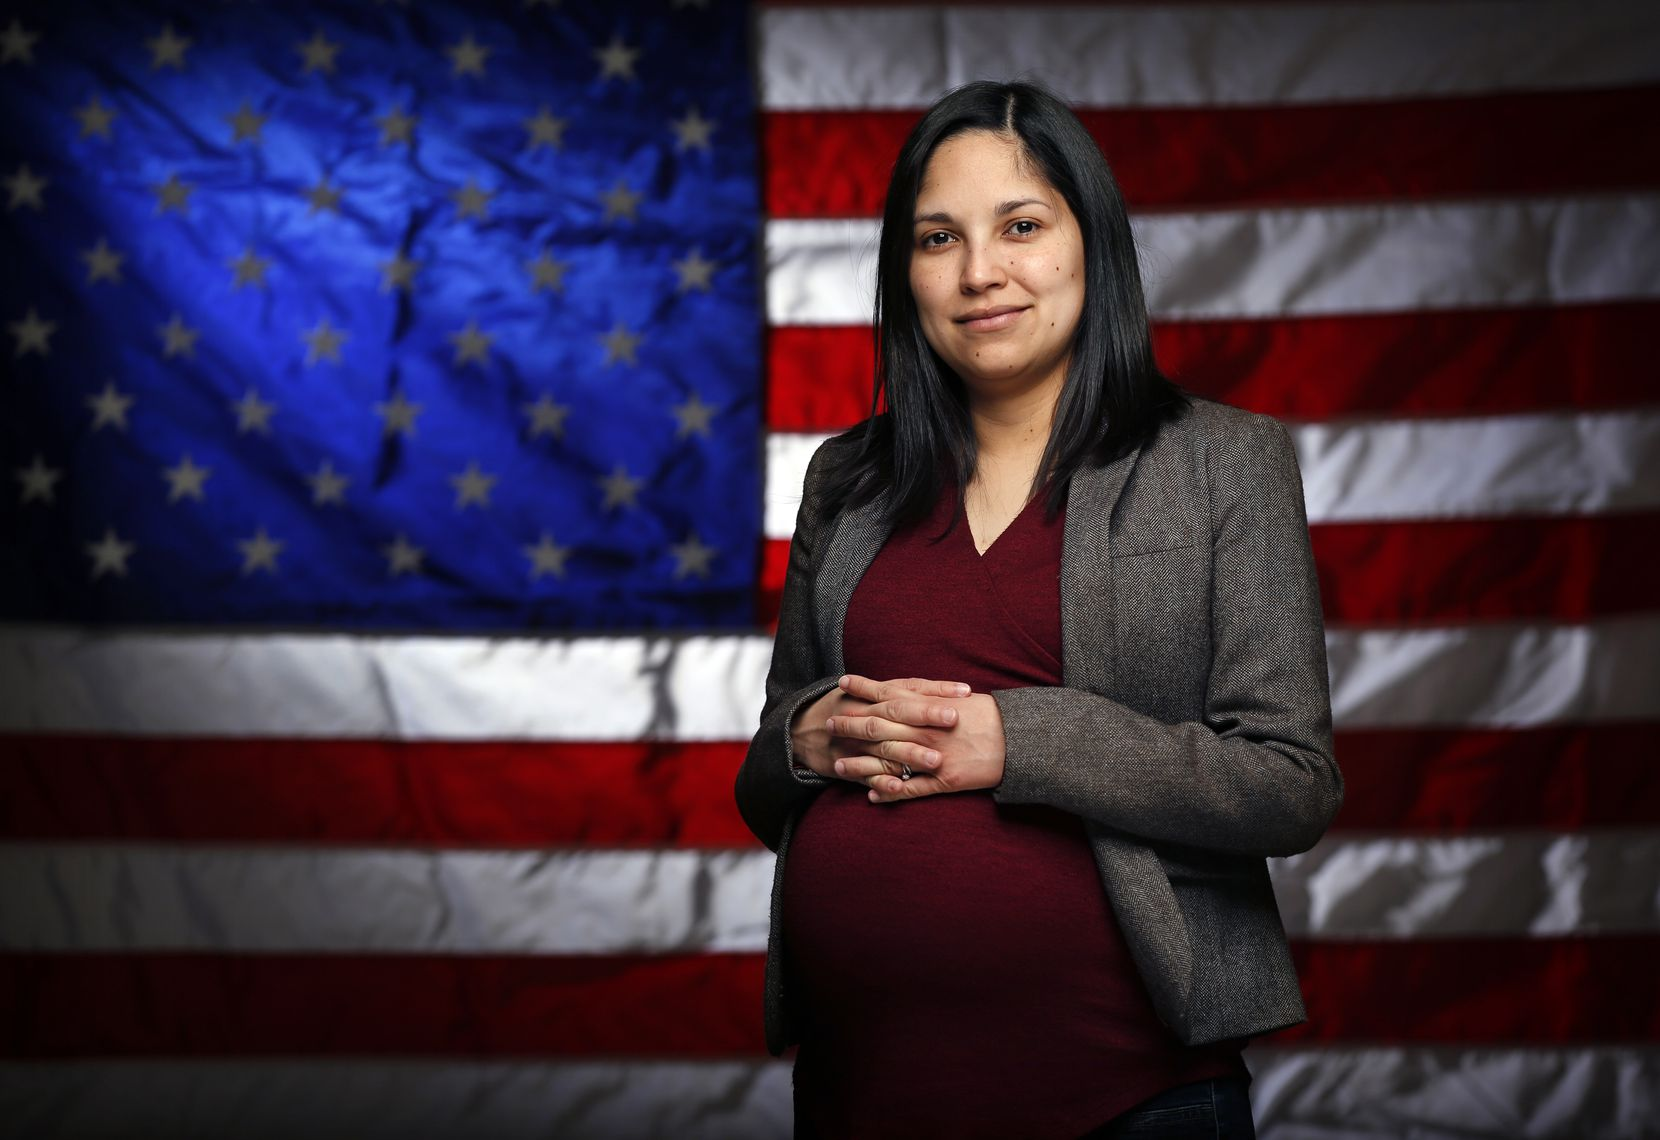 Dallas Morning News writer Julieta Chiquillo is one of the people whose name showed up on a list of people who the Texas Secretary of State says may not have been eligible to vote. Problem is, Juli has been eligible to vote since she became a naturalized U.S. citizen. She is photographed in the studio, Thursday, January 31, 2019. (Tom Fox/The Dallas Morning News)